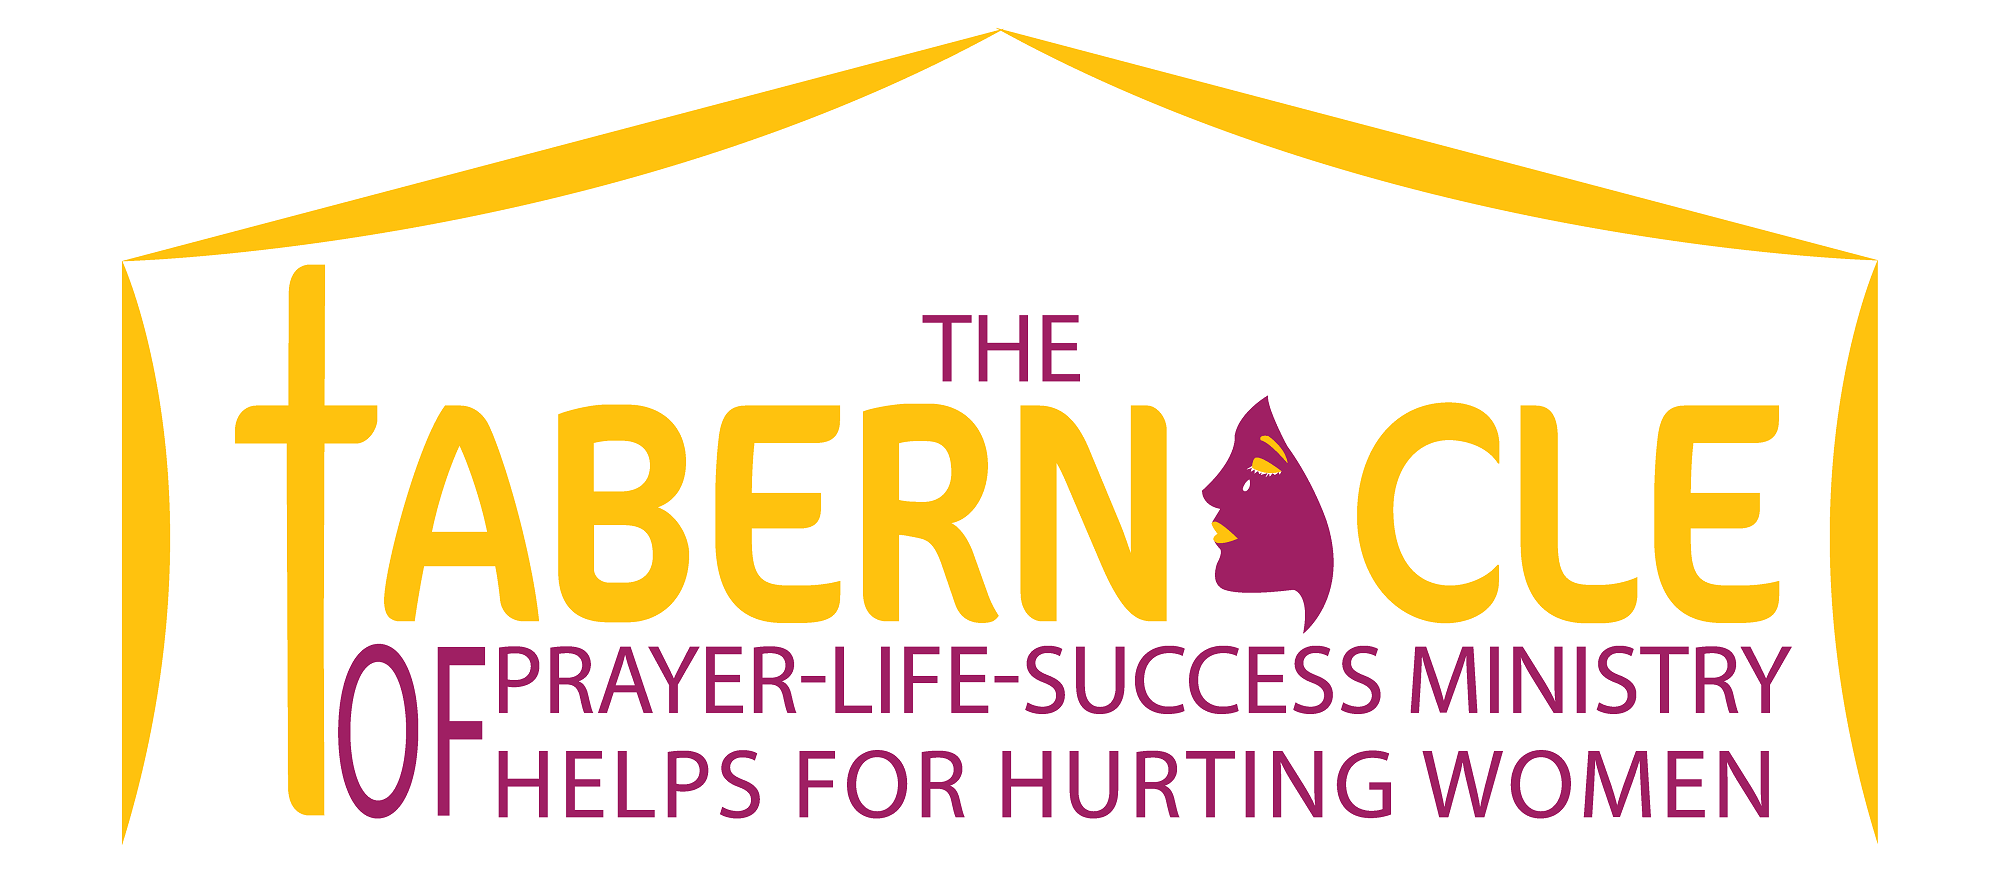 The Tabernacle of Prayer-Life-Success